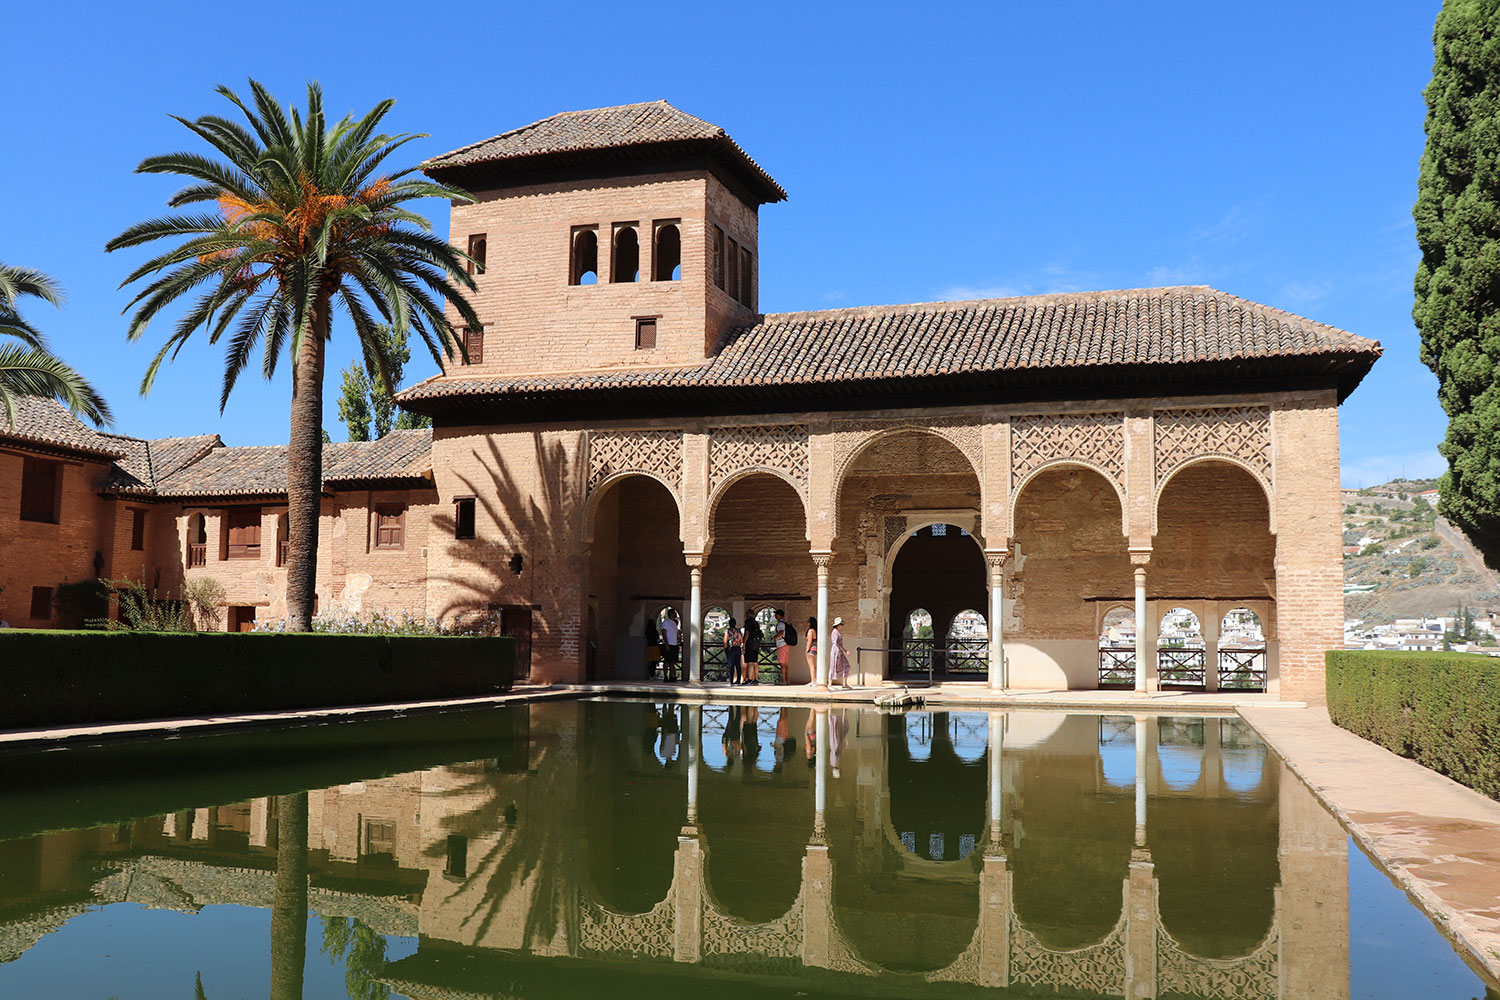 Gardens of the Alhambra